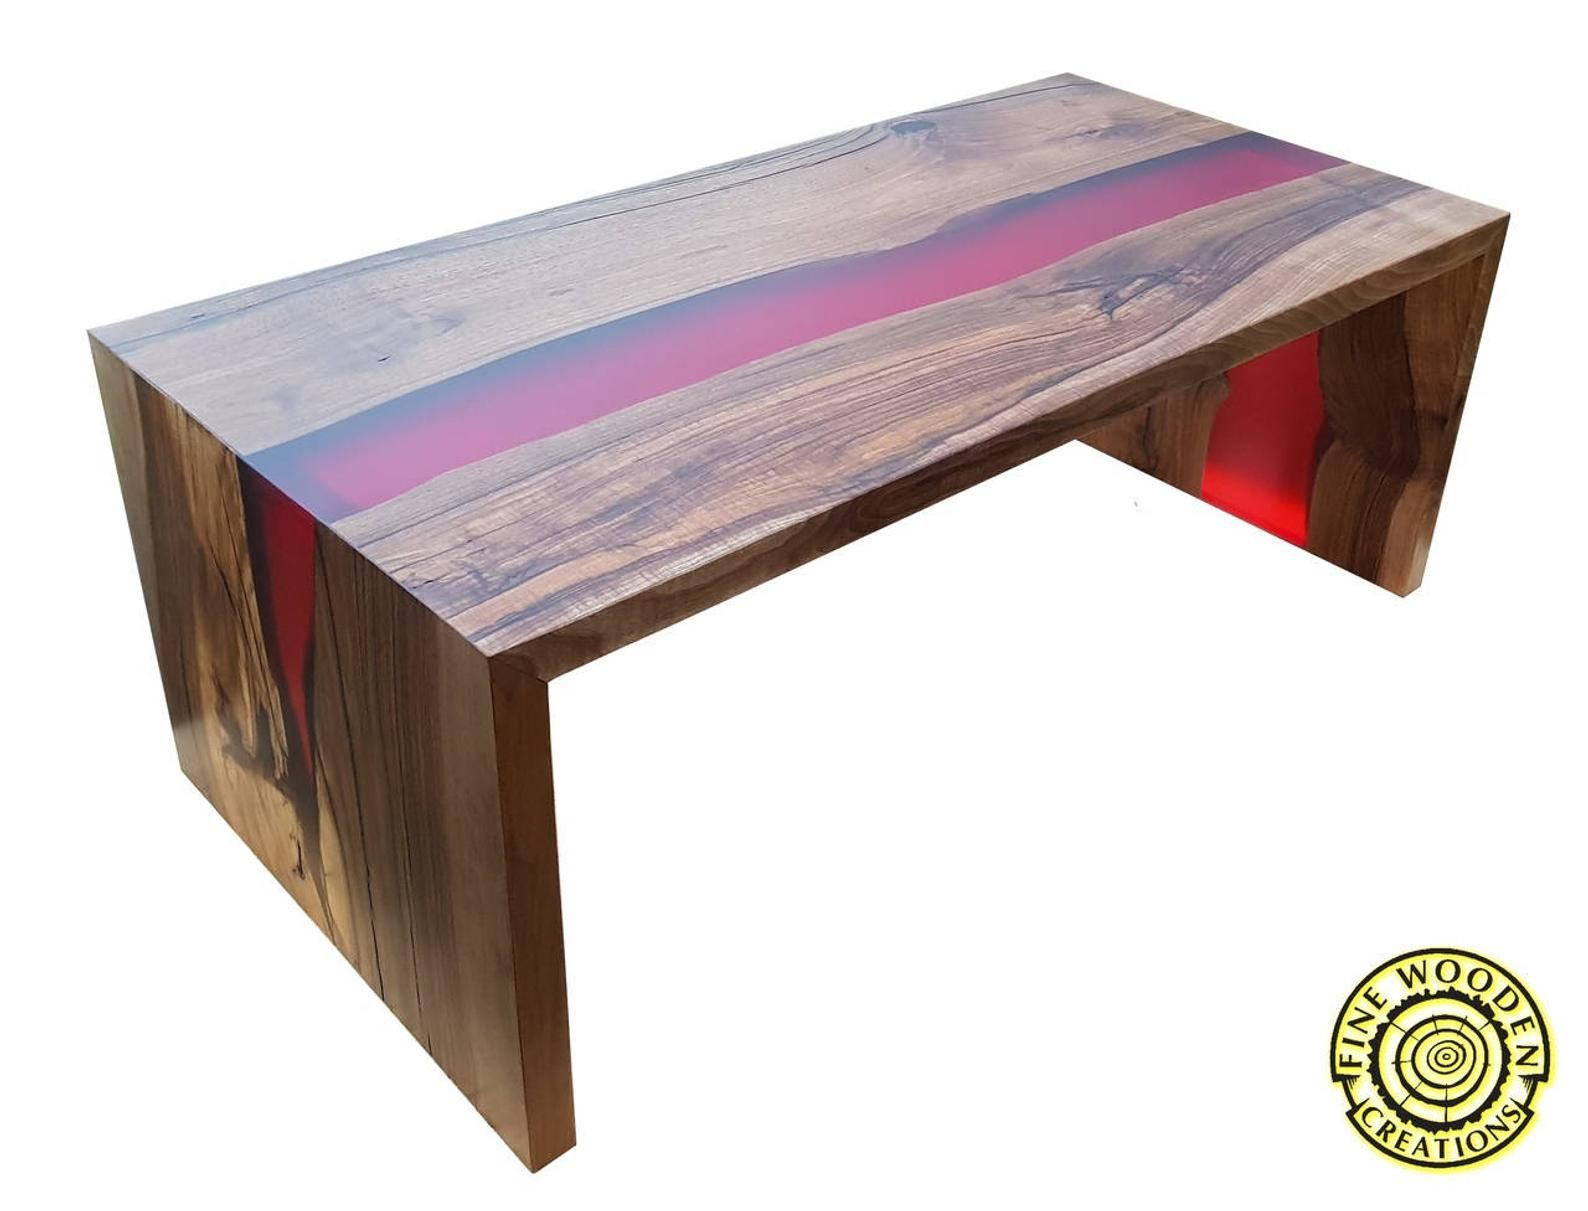 Table Basse De Riviere Double Cascade Avec La Riviere De Resine Rouge Red Coffee Tables Resin Table Coffee Table